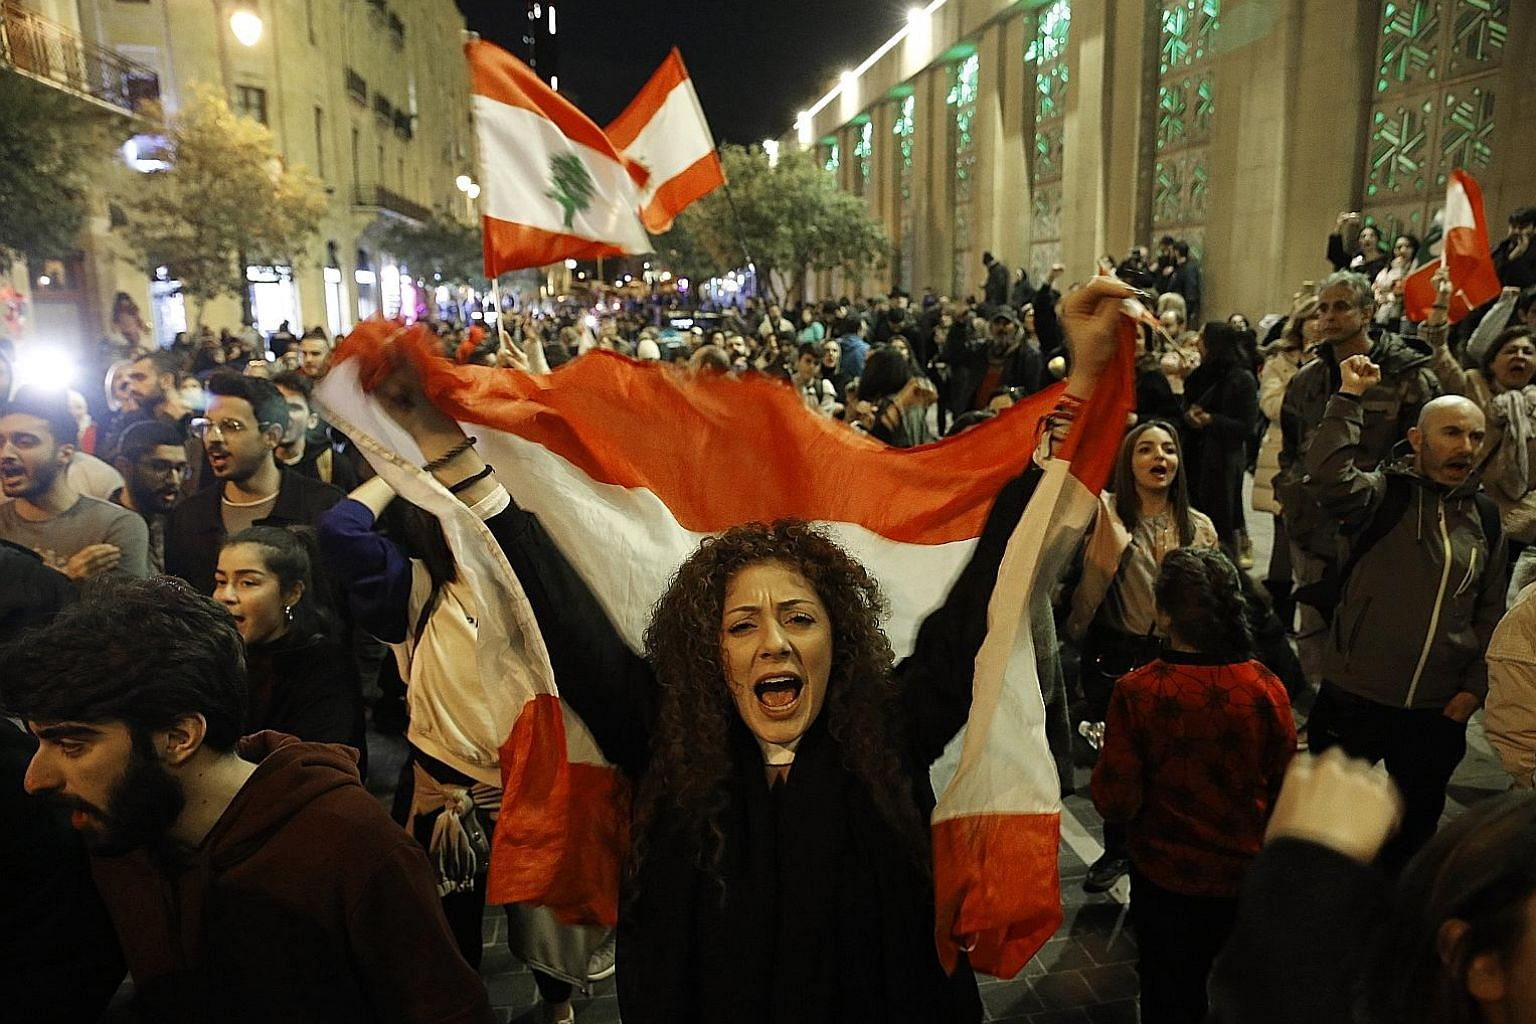 Above: Protesters in Beirut, Lebanon, last Saturday, demanding an end to widespread corruption and mismanagement by the political class. The sudden eruption of mass protests in various parts of the world is a negative development, says the writer. Be